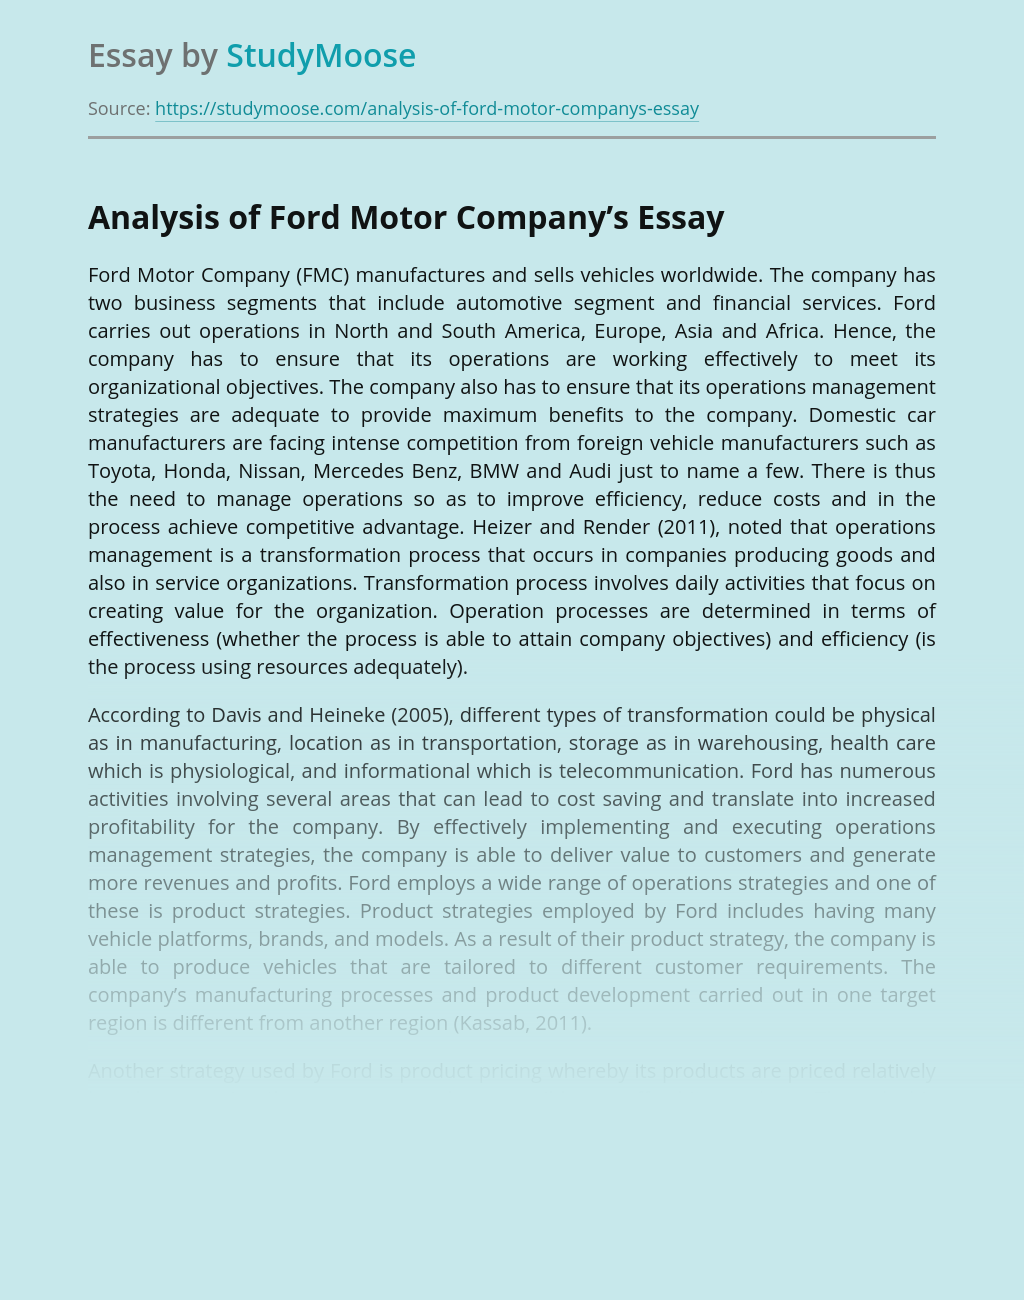 Analysis of Ford Motor Company's